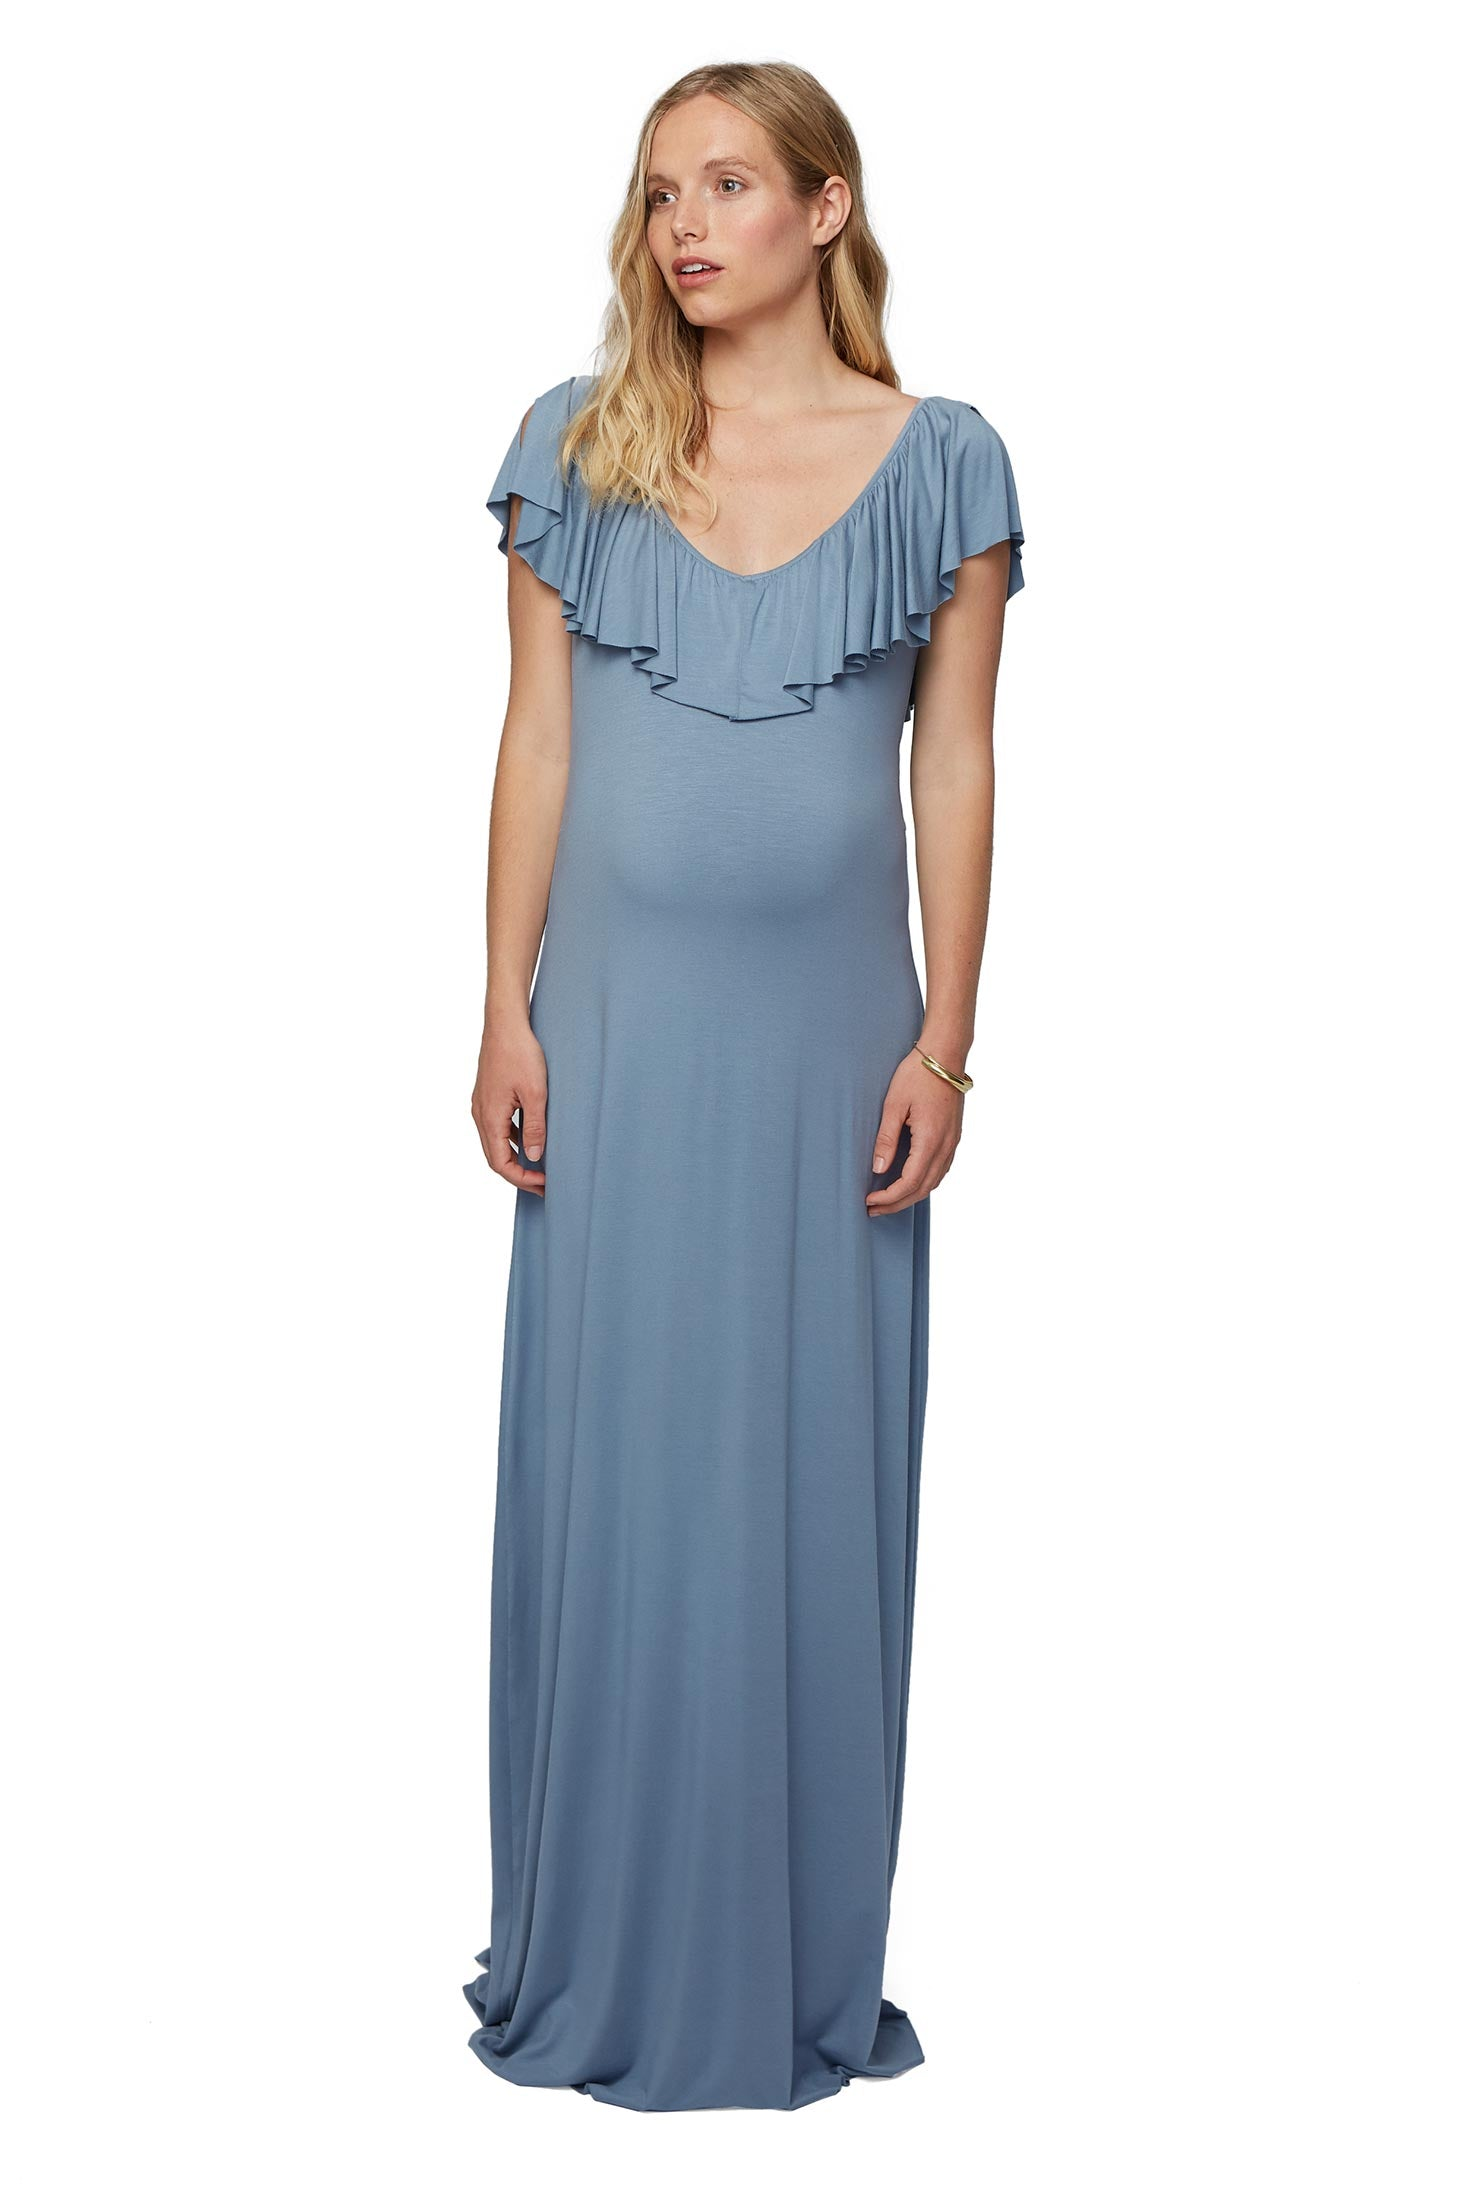 Loren Dress - Bay, Maternity – Rachel Pally